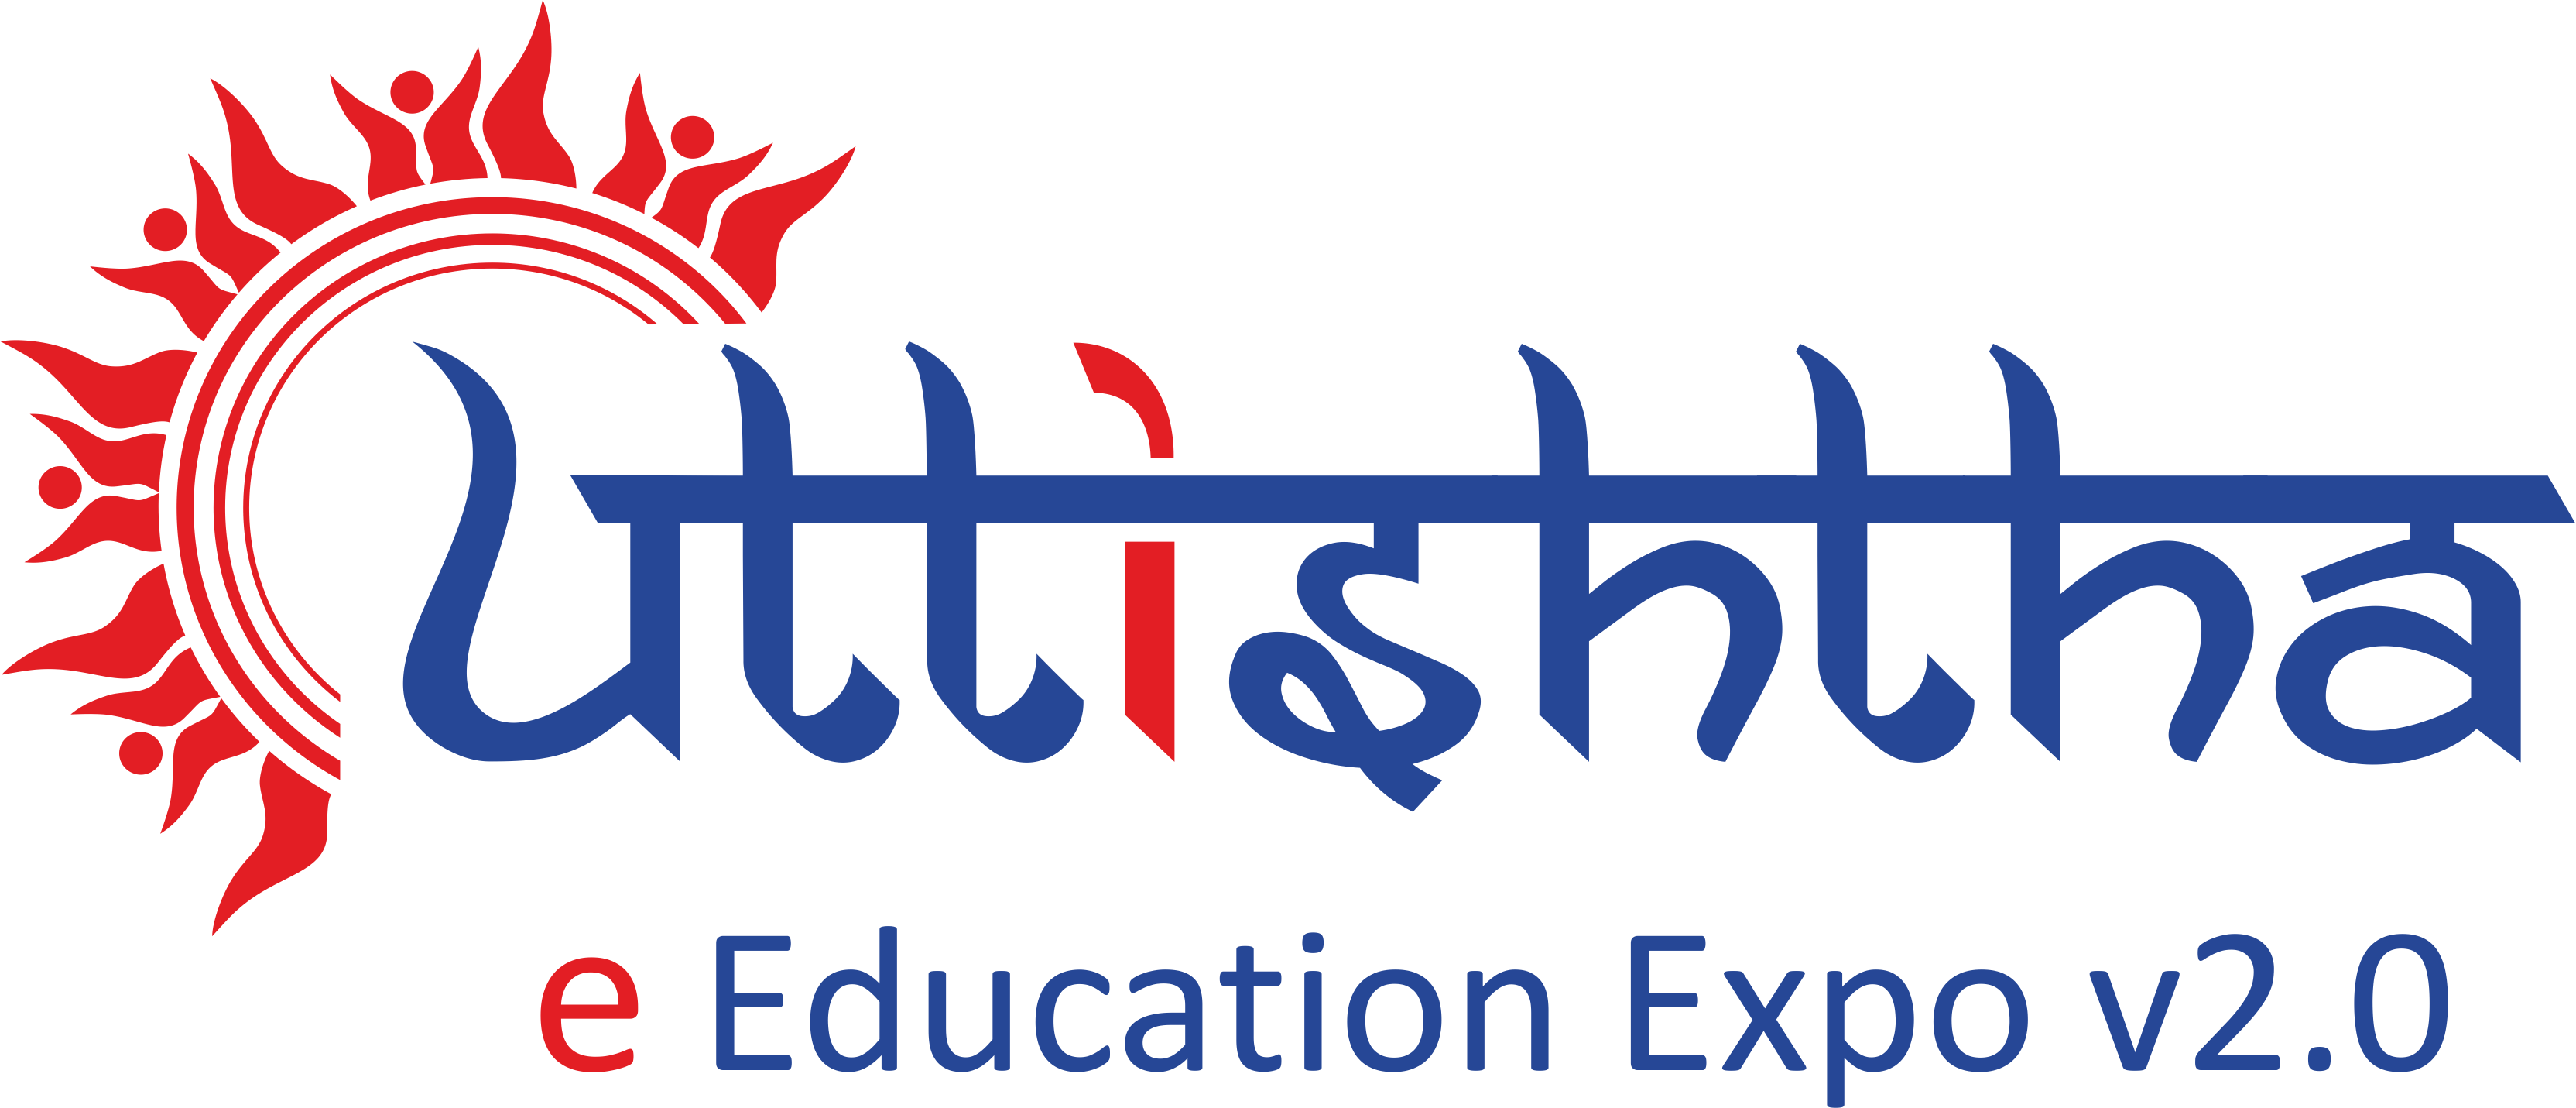 Book Online Tickets for Uttishtha e-Education Expo v2.0, Ahmedabad. About Uttishtha e-Education Expo\\\'Uttishtha\\\' means arise, awake and be prepared. With this name and message, we aimed to bring new dimensions in currenteducation sector. We kicked off our first \\\'Uttishtha e-Education Expo\\\' at Ahmedabad in